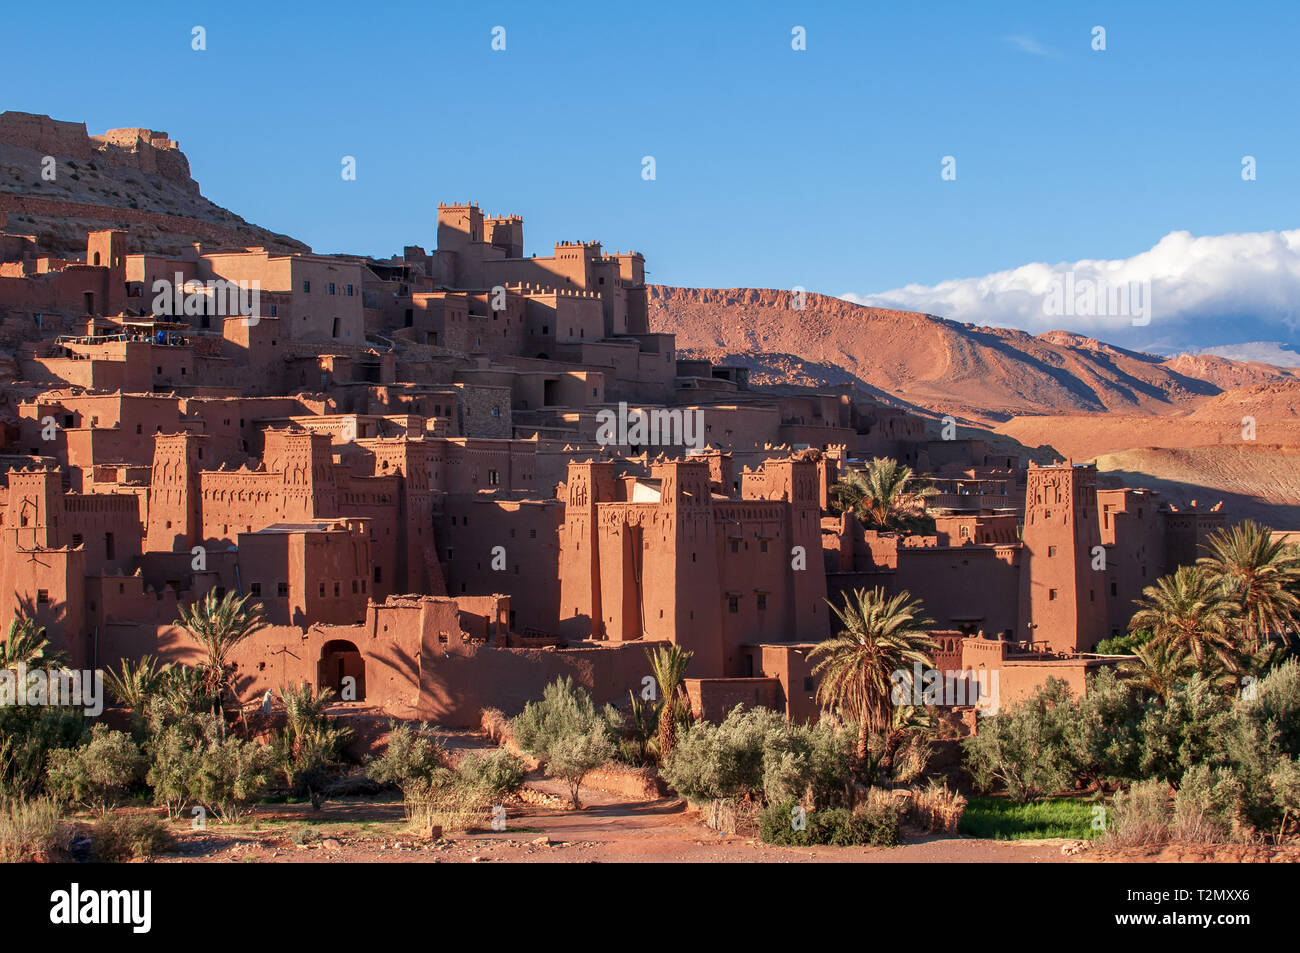 Old Kasbah Aid Ben Haddou in the desert of Morocco - Stock Image